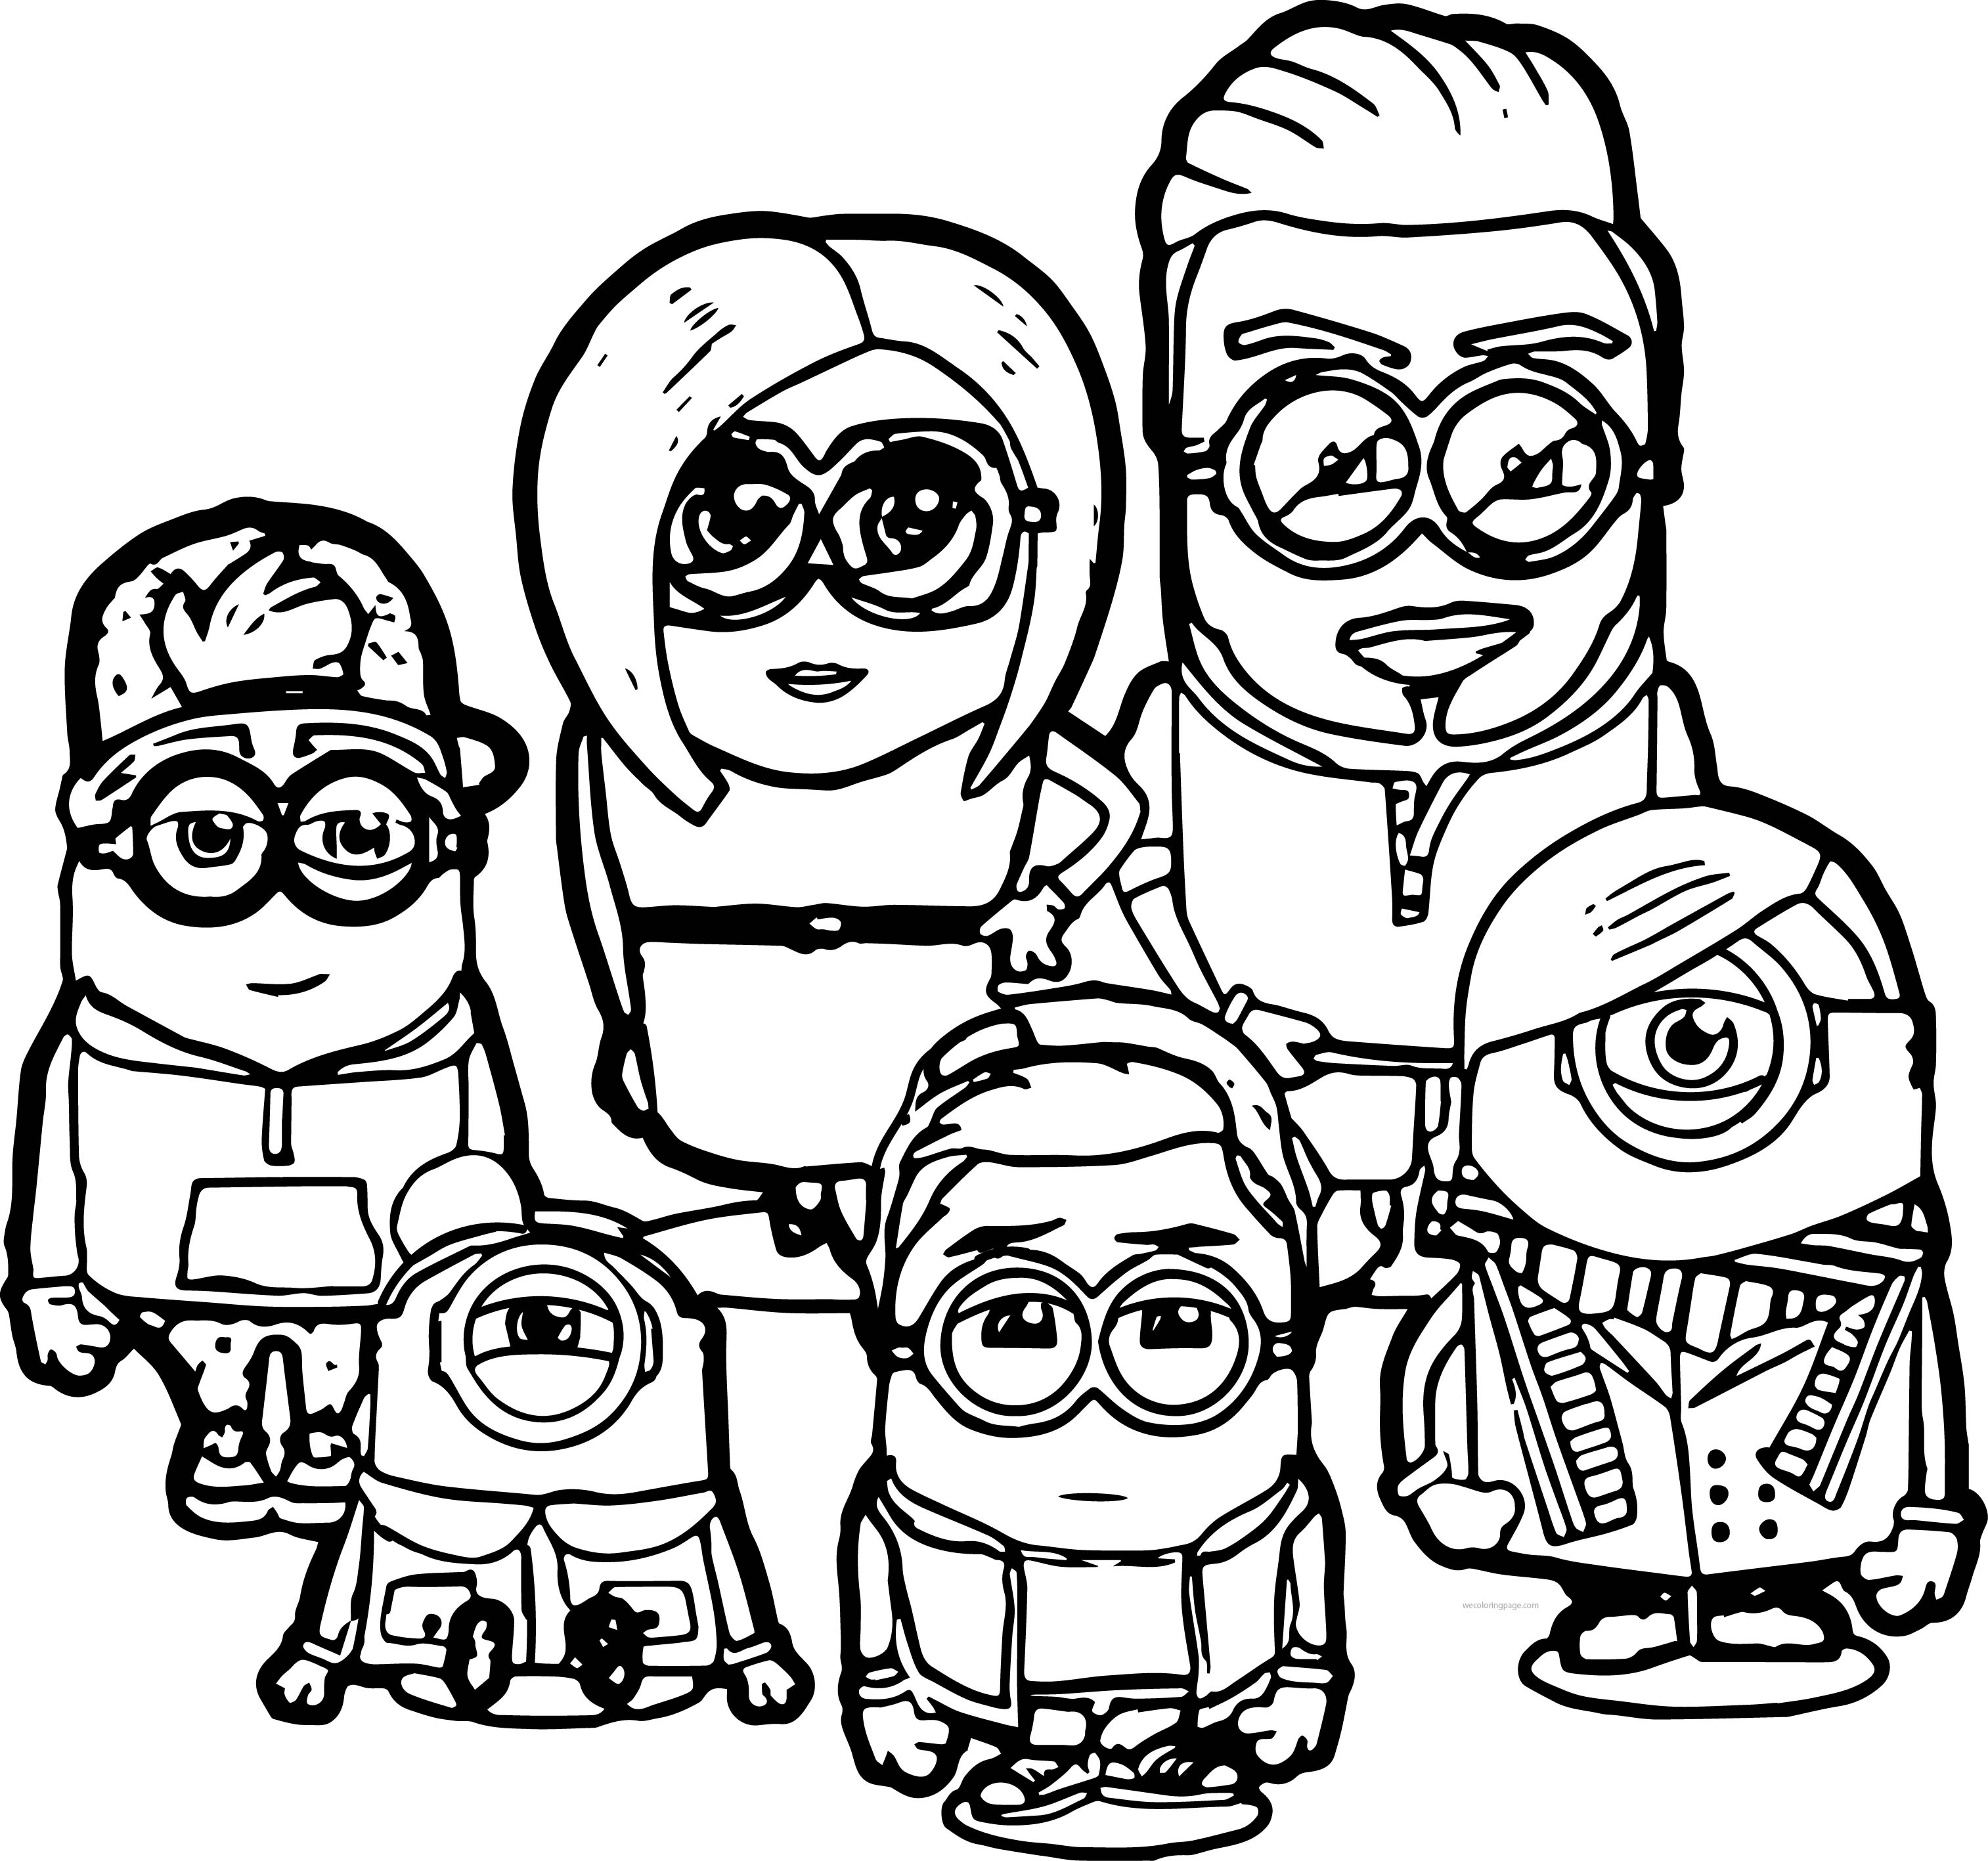 Minion Coloring Pages Free download